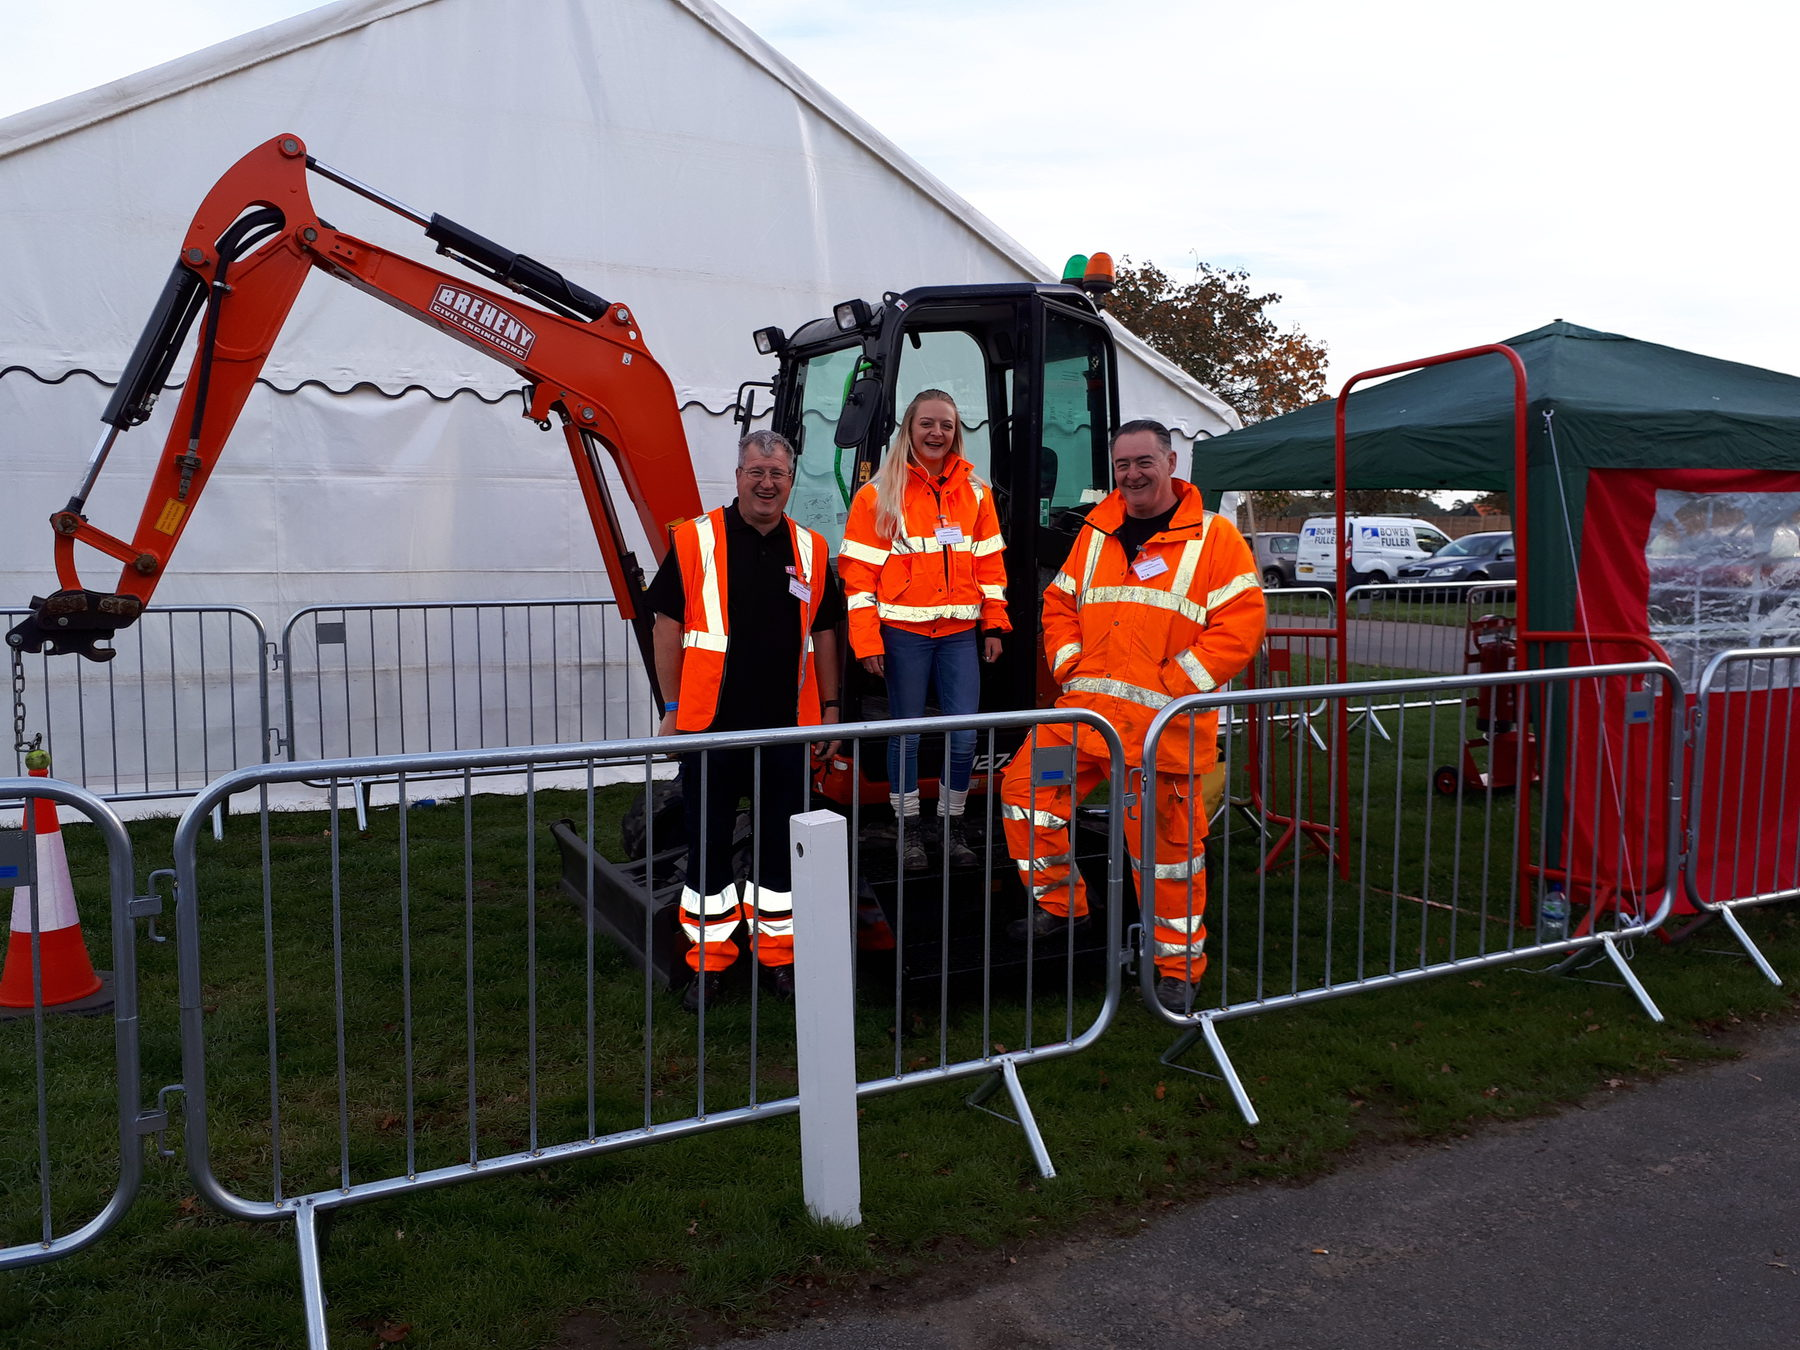 Breheny Team at the Suffolk Skills Show